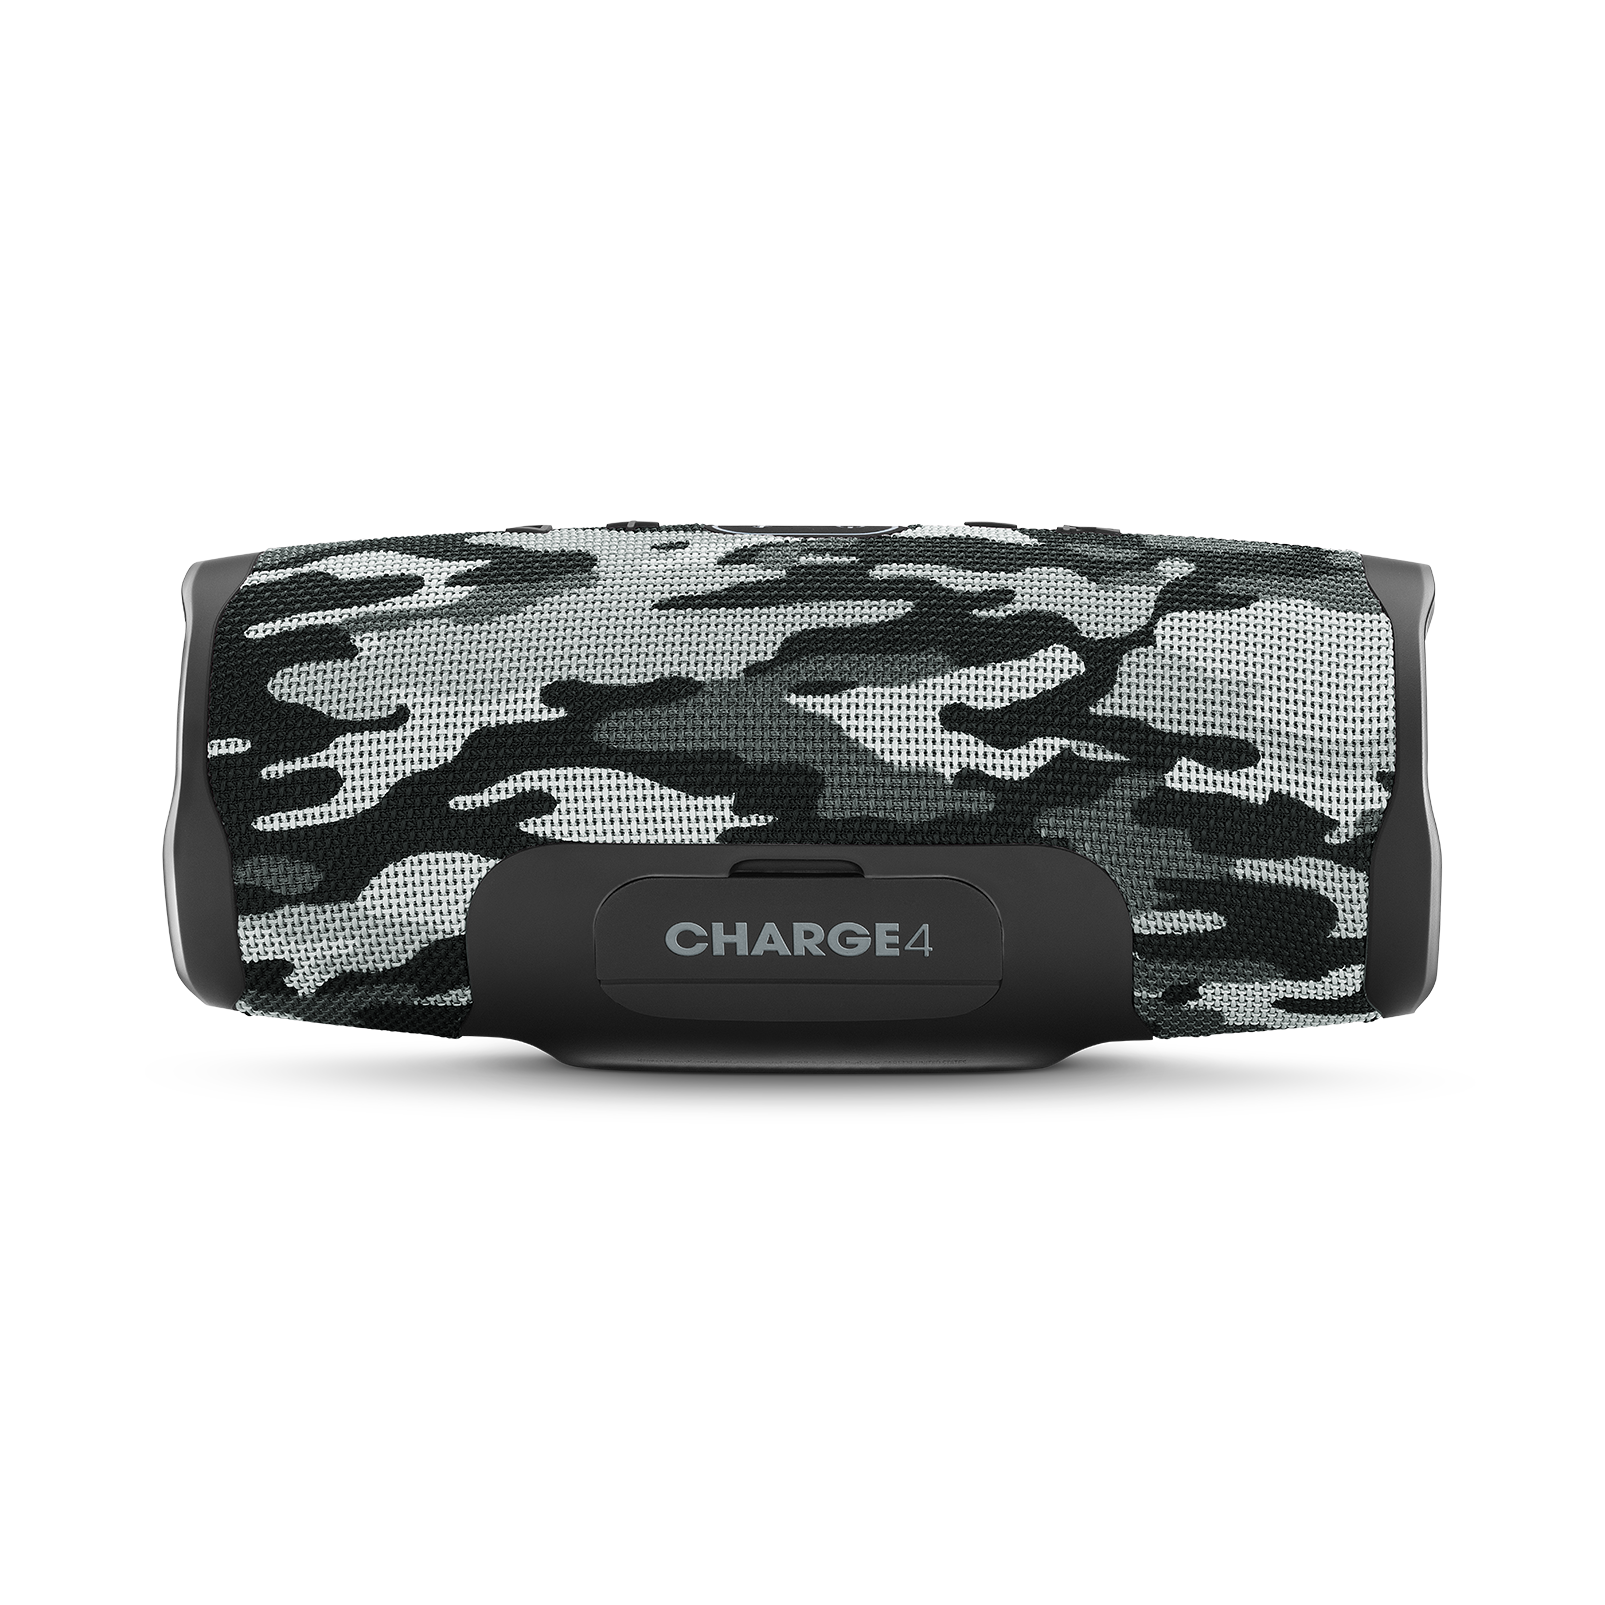 Image of JBL Charge 4 Black/White Camouflage Bluetooth Högtalare JBL Bluetooth Högtalare 6925281946417 JBLCHARGE4BCAMO_A